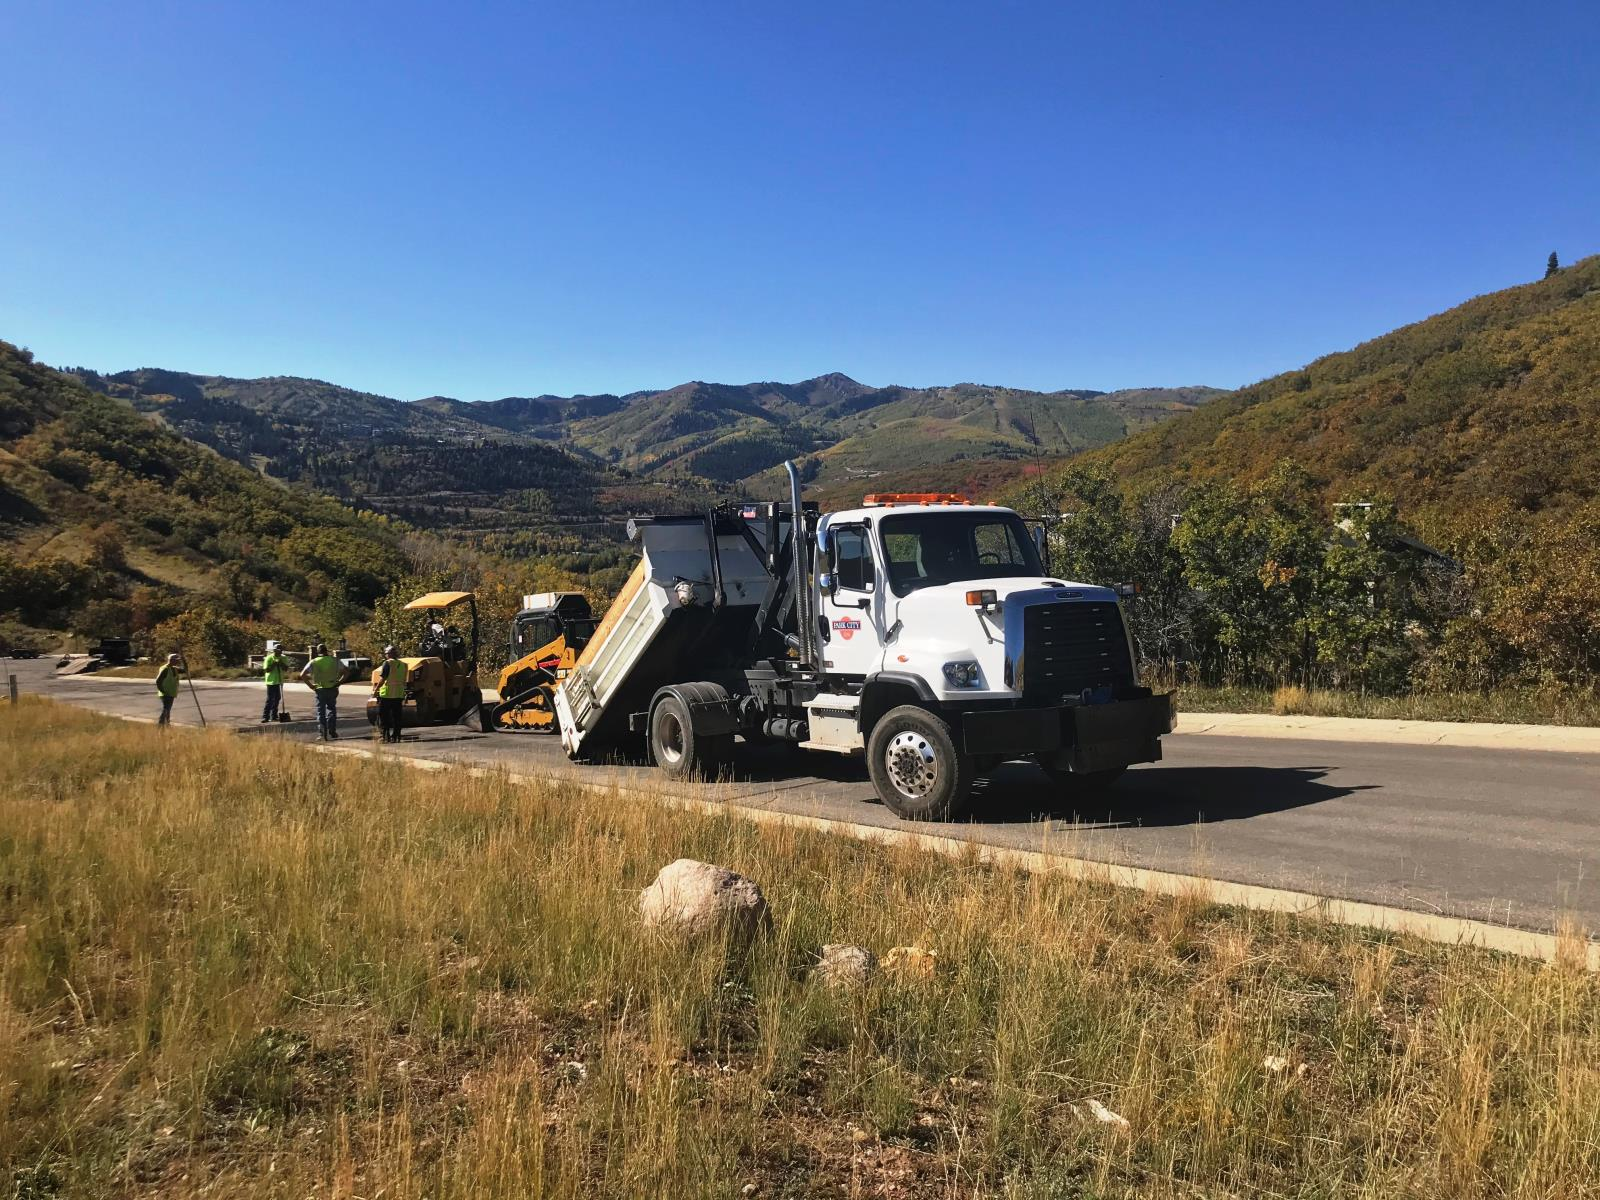 Upper Deer Valley Road Work with large dump truck